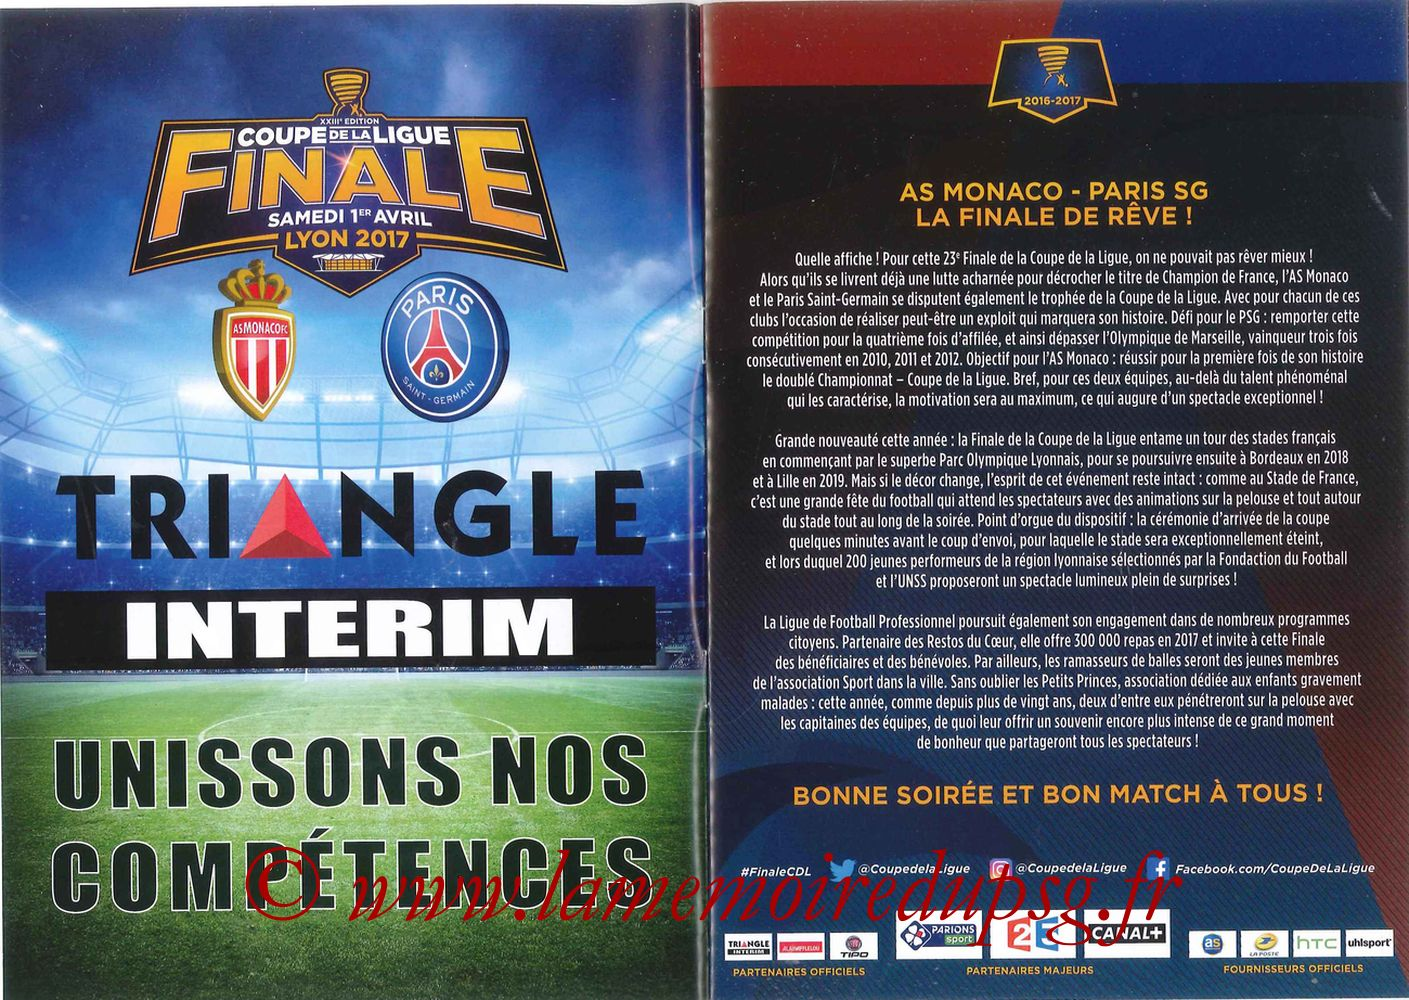 2017-04-01  Monaco-PSG (Finale CL à Lyon, Programme officiel) - Pages 02 et 03